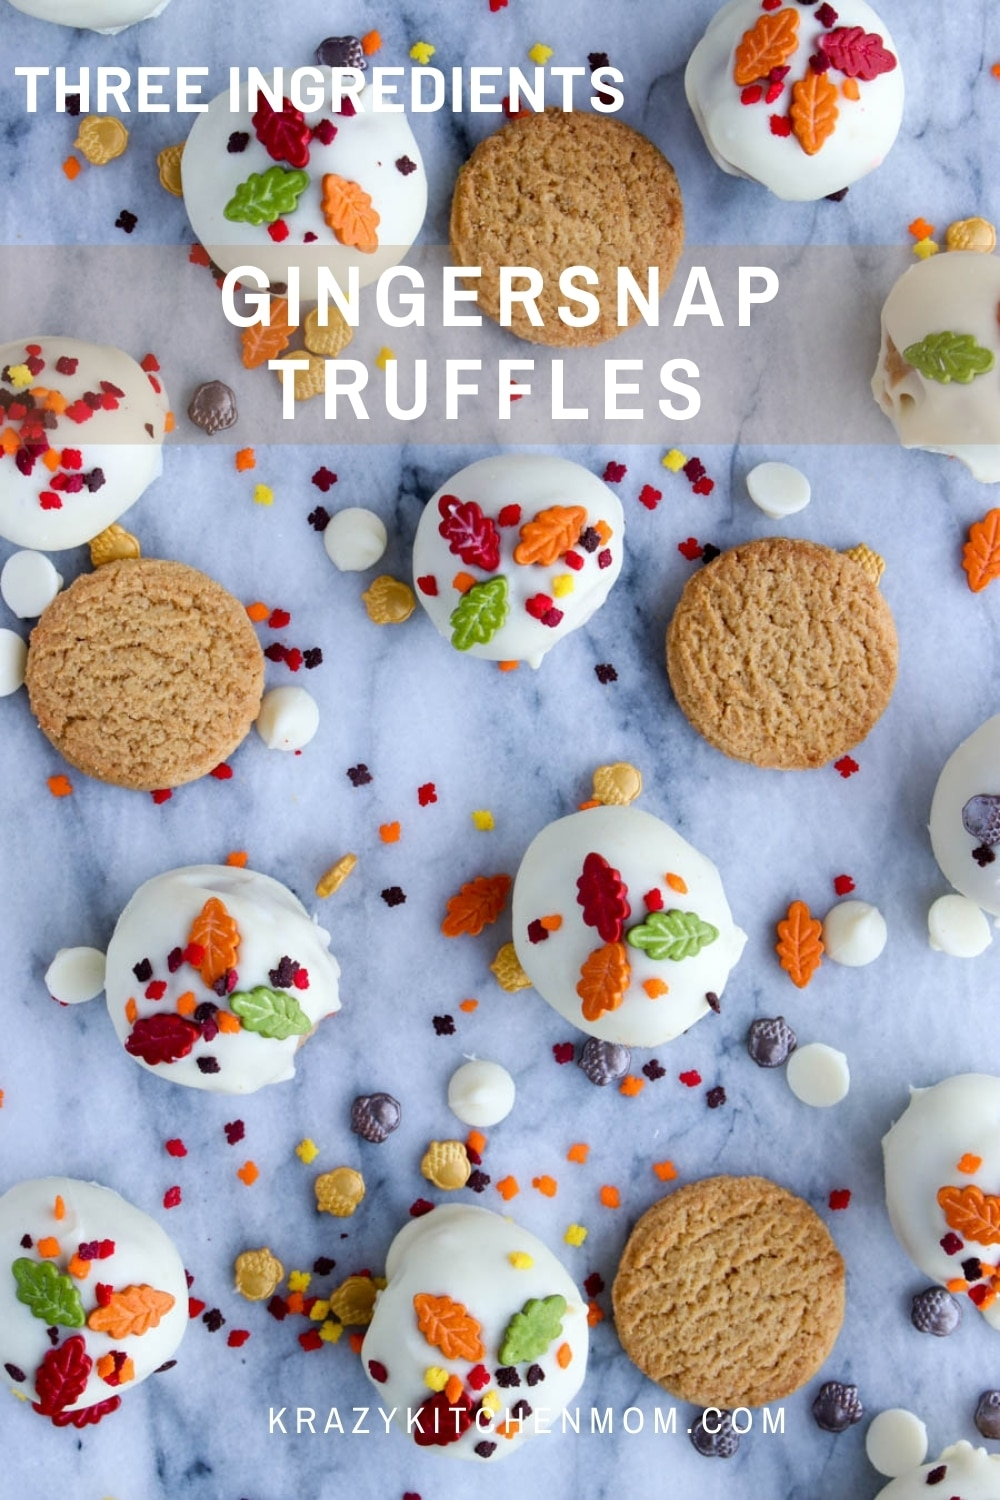 With a bag of gingersnap cookies, a block of cream cheese, and some white chocolate, you can make these yummy and fall festive truffle candies for your family and friends. via @krazykitchenmom